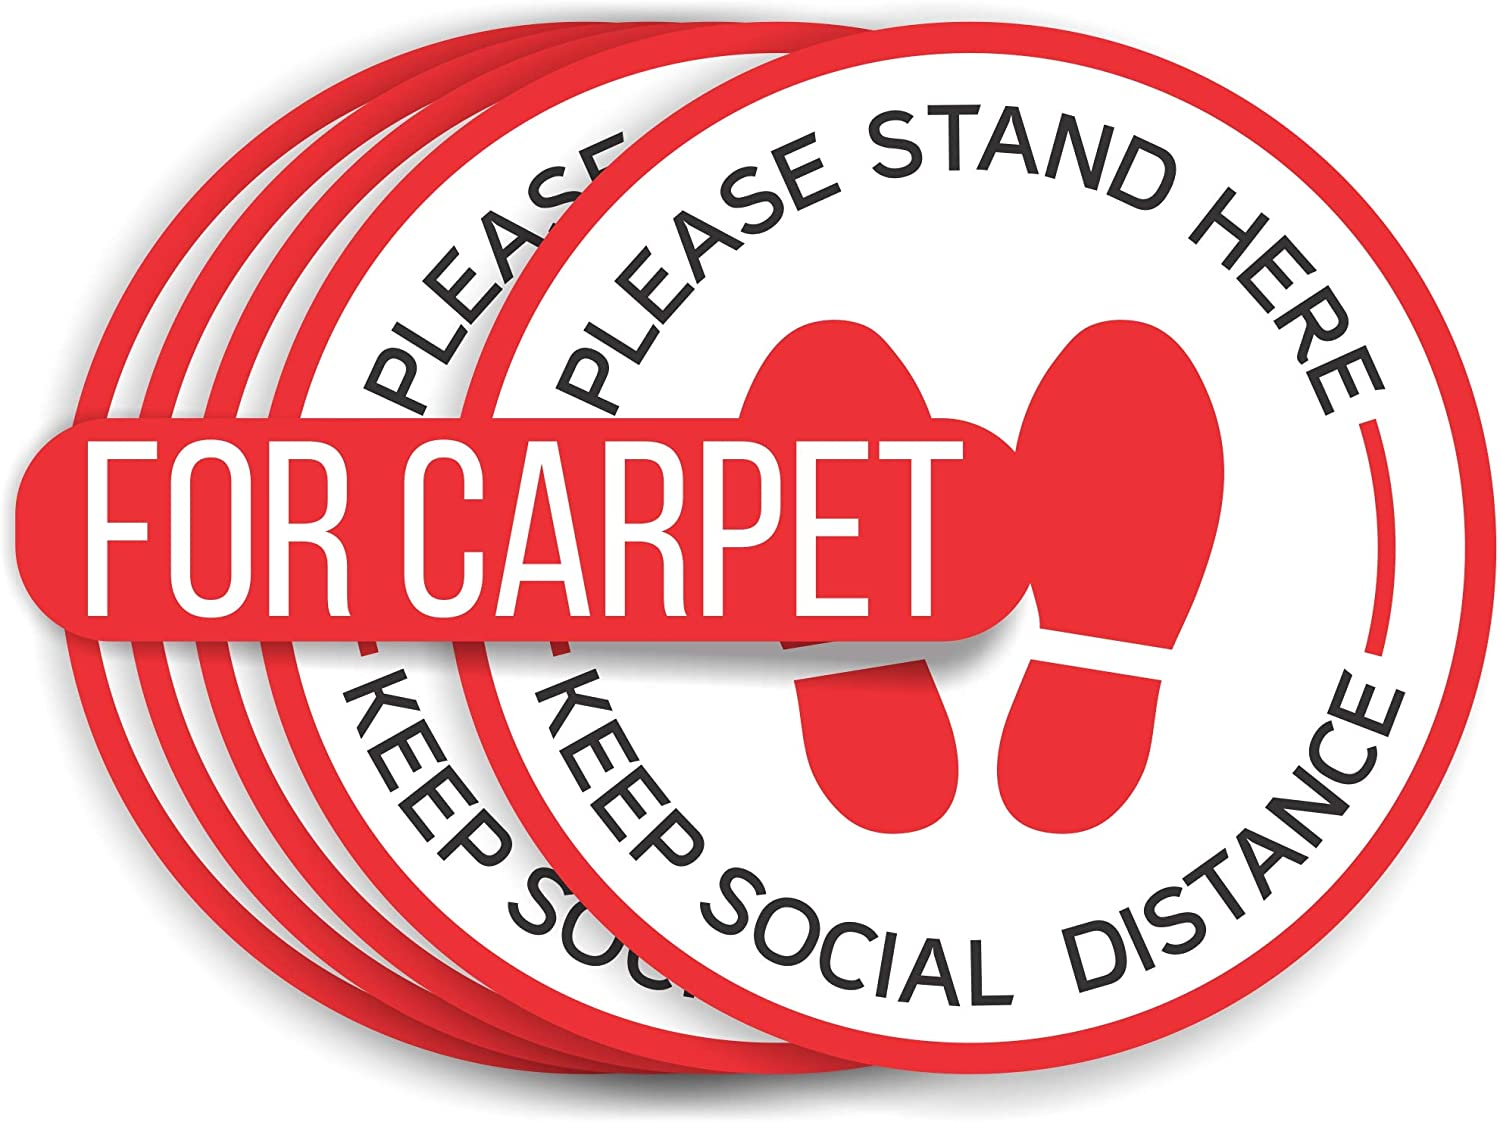 Social Distancing Floor Decals for Carpet | 6 Feet Notice Floor Sign for Queues, Lines | Anti-Slip Safety Notice Floor Marker | Commercial Grade Stand Here Sign for Businesses, Restaurants (5)